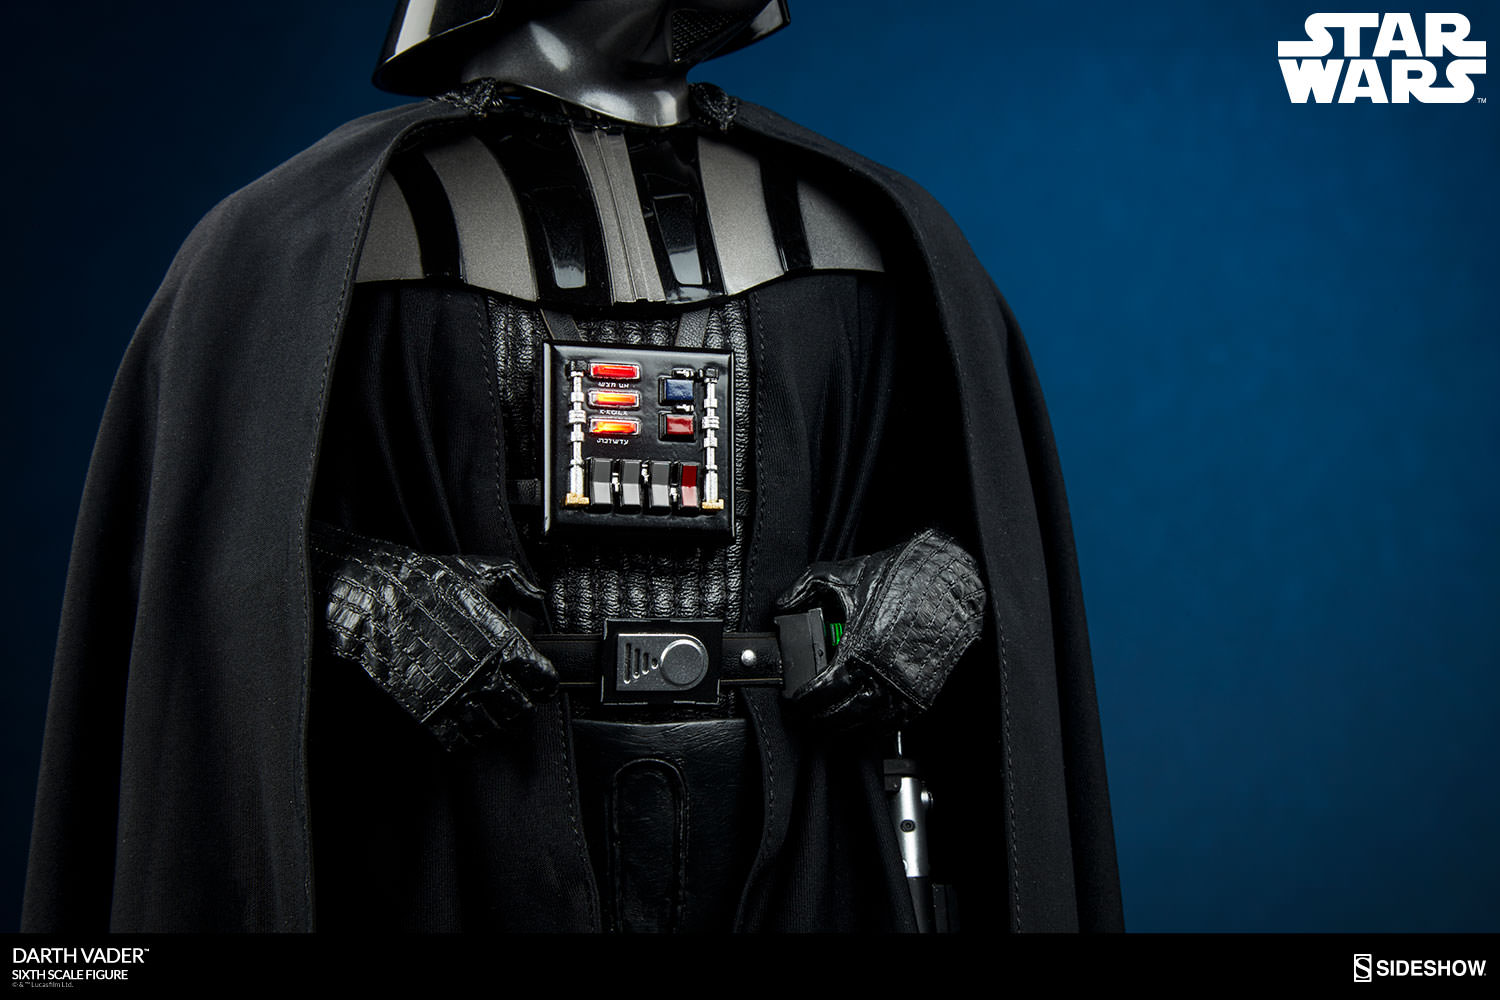 star wars darth vader sixth scale figure by sideshow. Black Bedroom Furniture Sets. Home Design Ideas